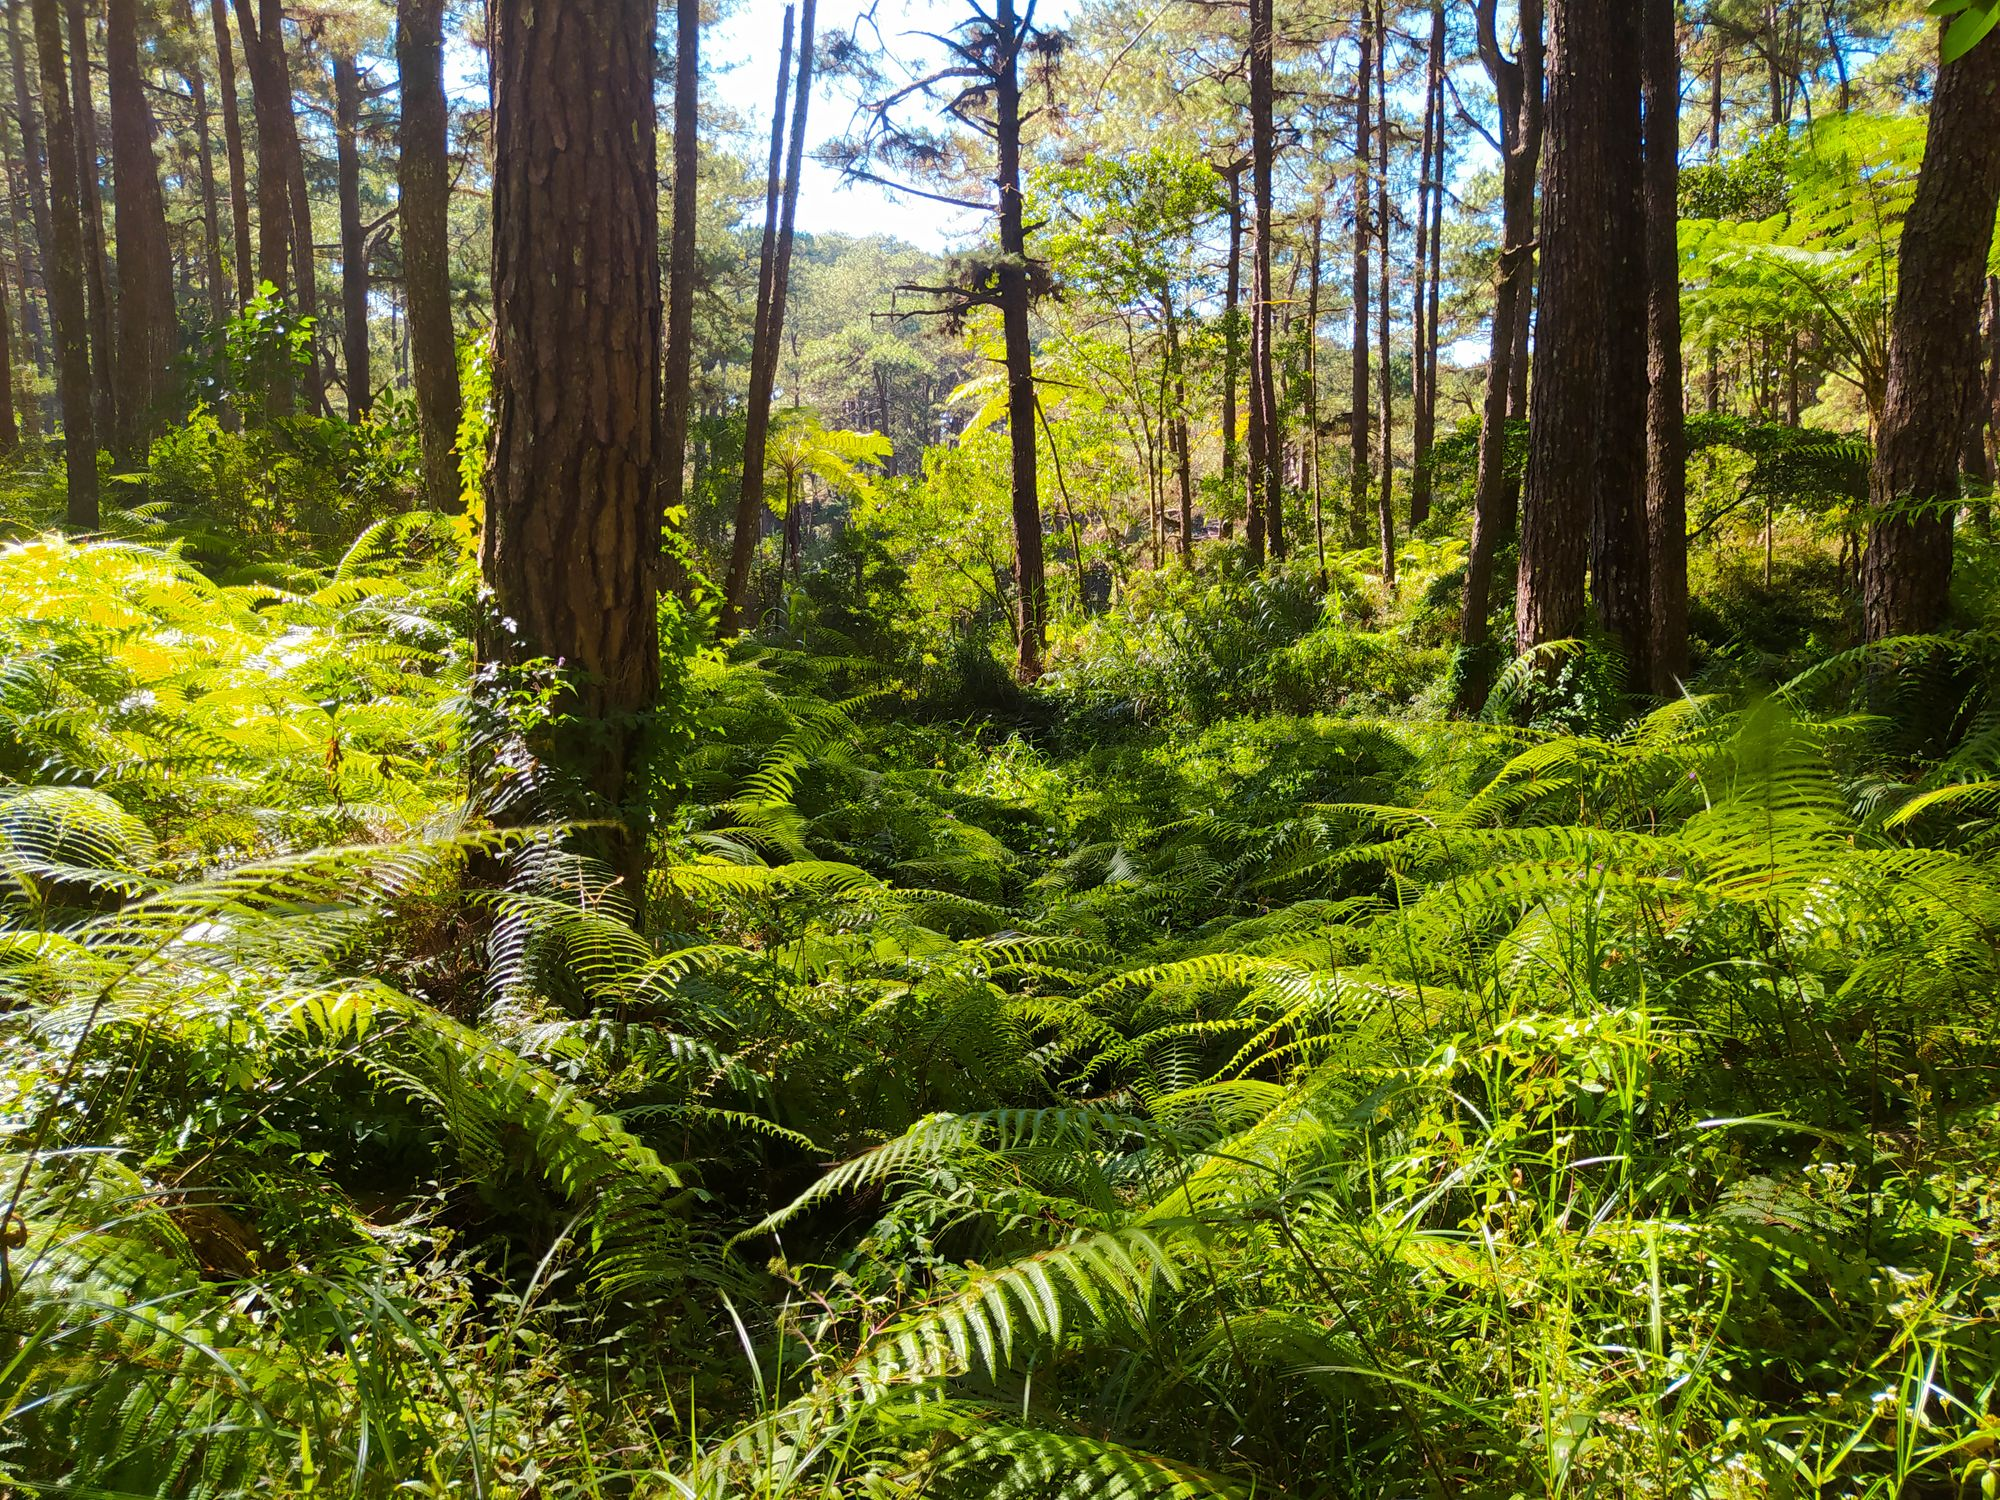 A dense carpet of ferns and other undergrowth beneath pine trees somewhere along the Eco-Trail